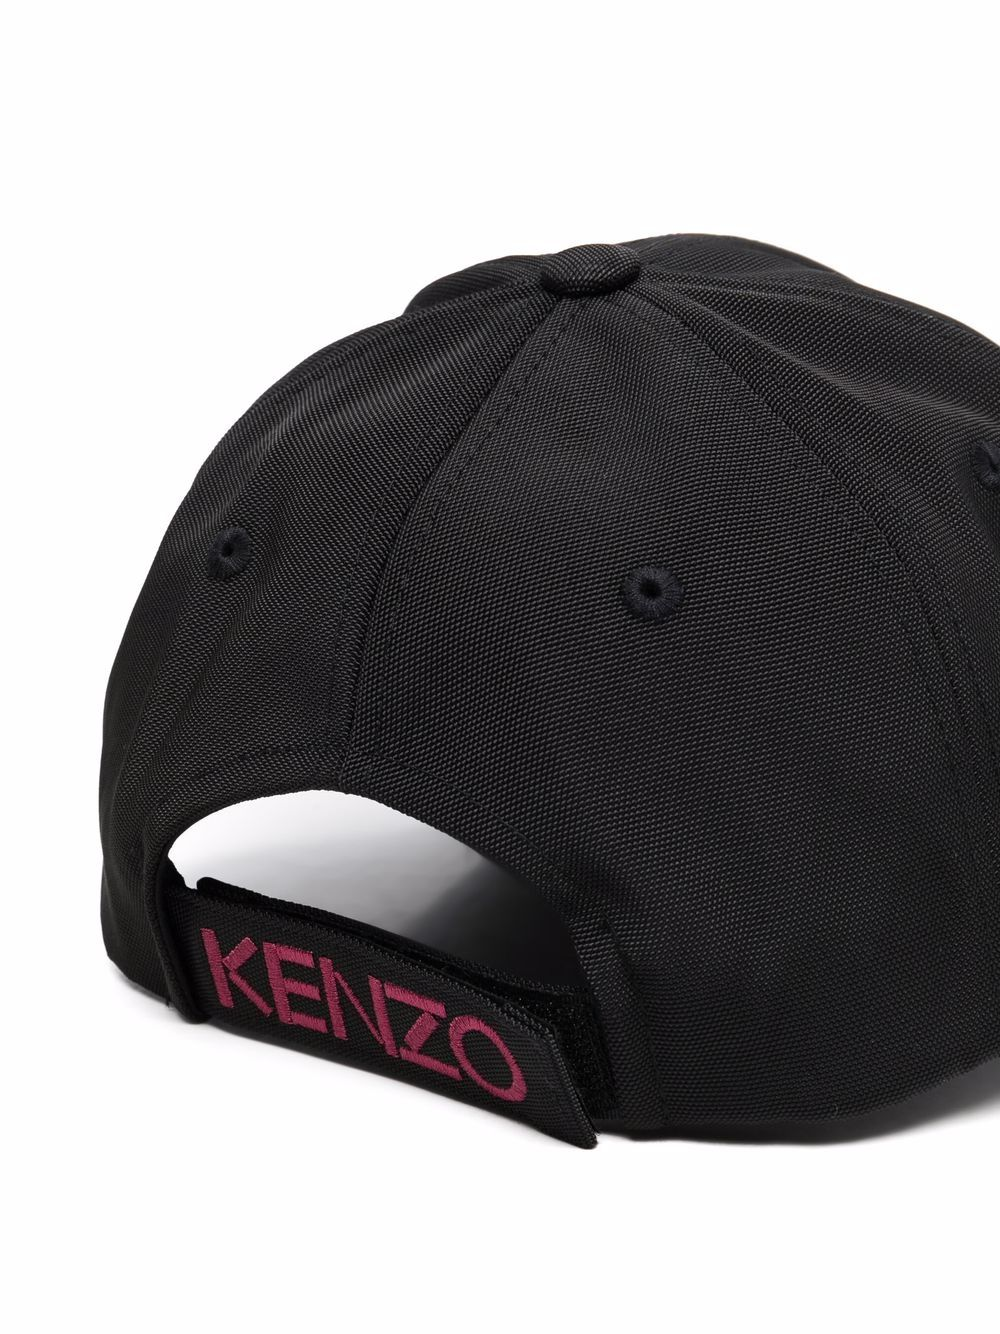 embroidery hat unisex black in cotton KENZO | Hats | FA65AC301F2099G